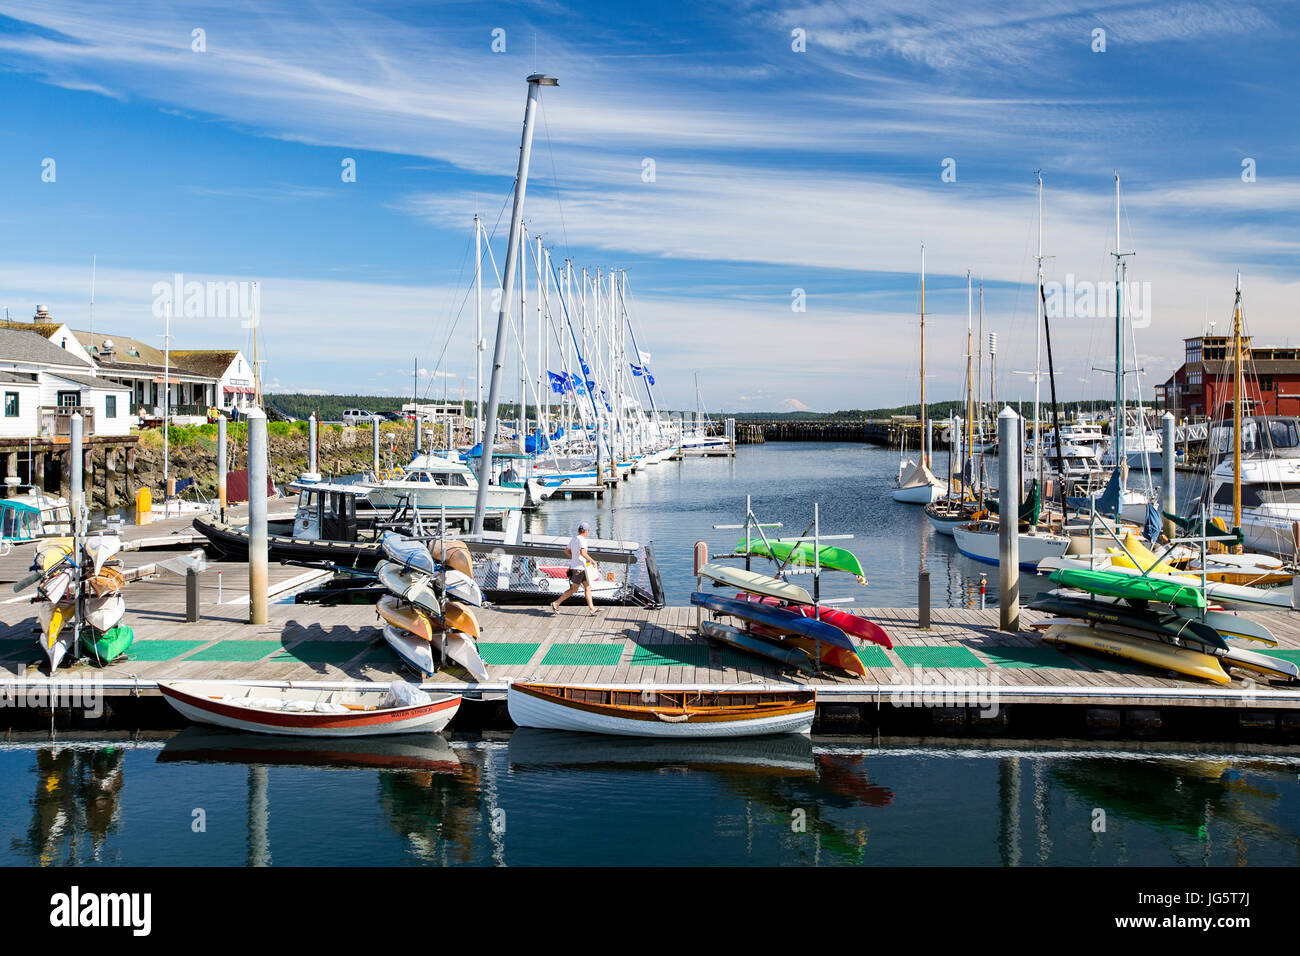 Boats in marina with Mount. Rainier in background. Point Hudson marina, Port Townsend, Washington. - Stock Image